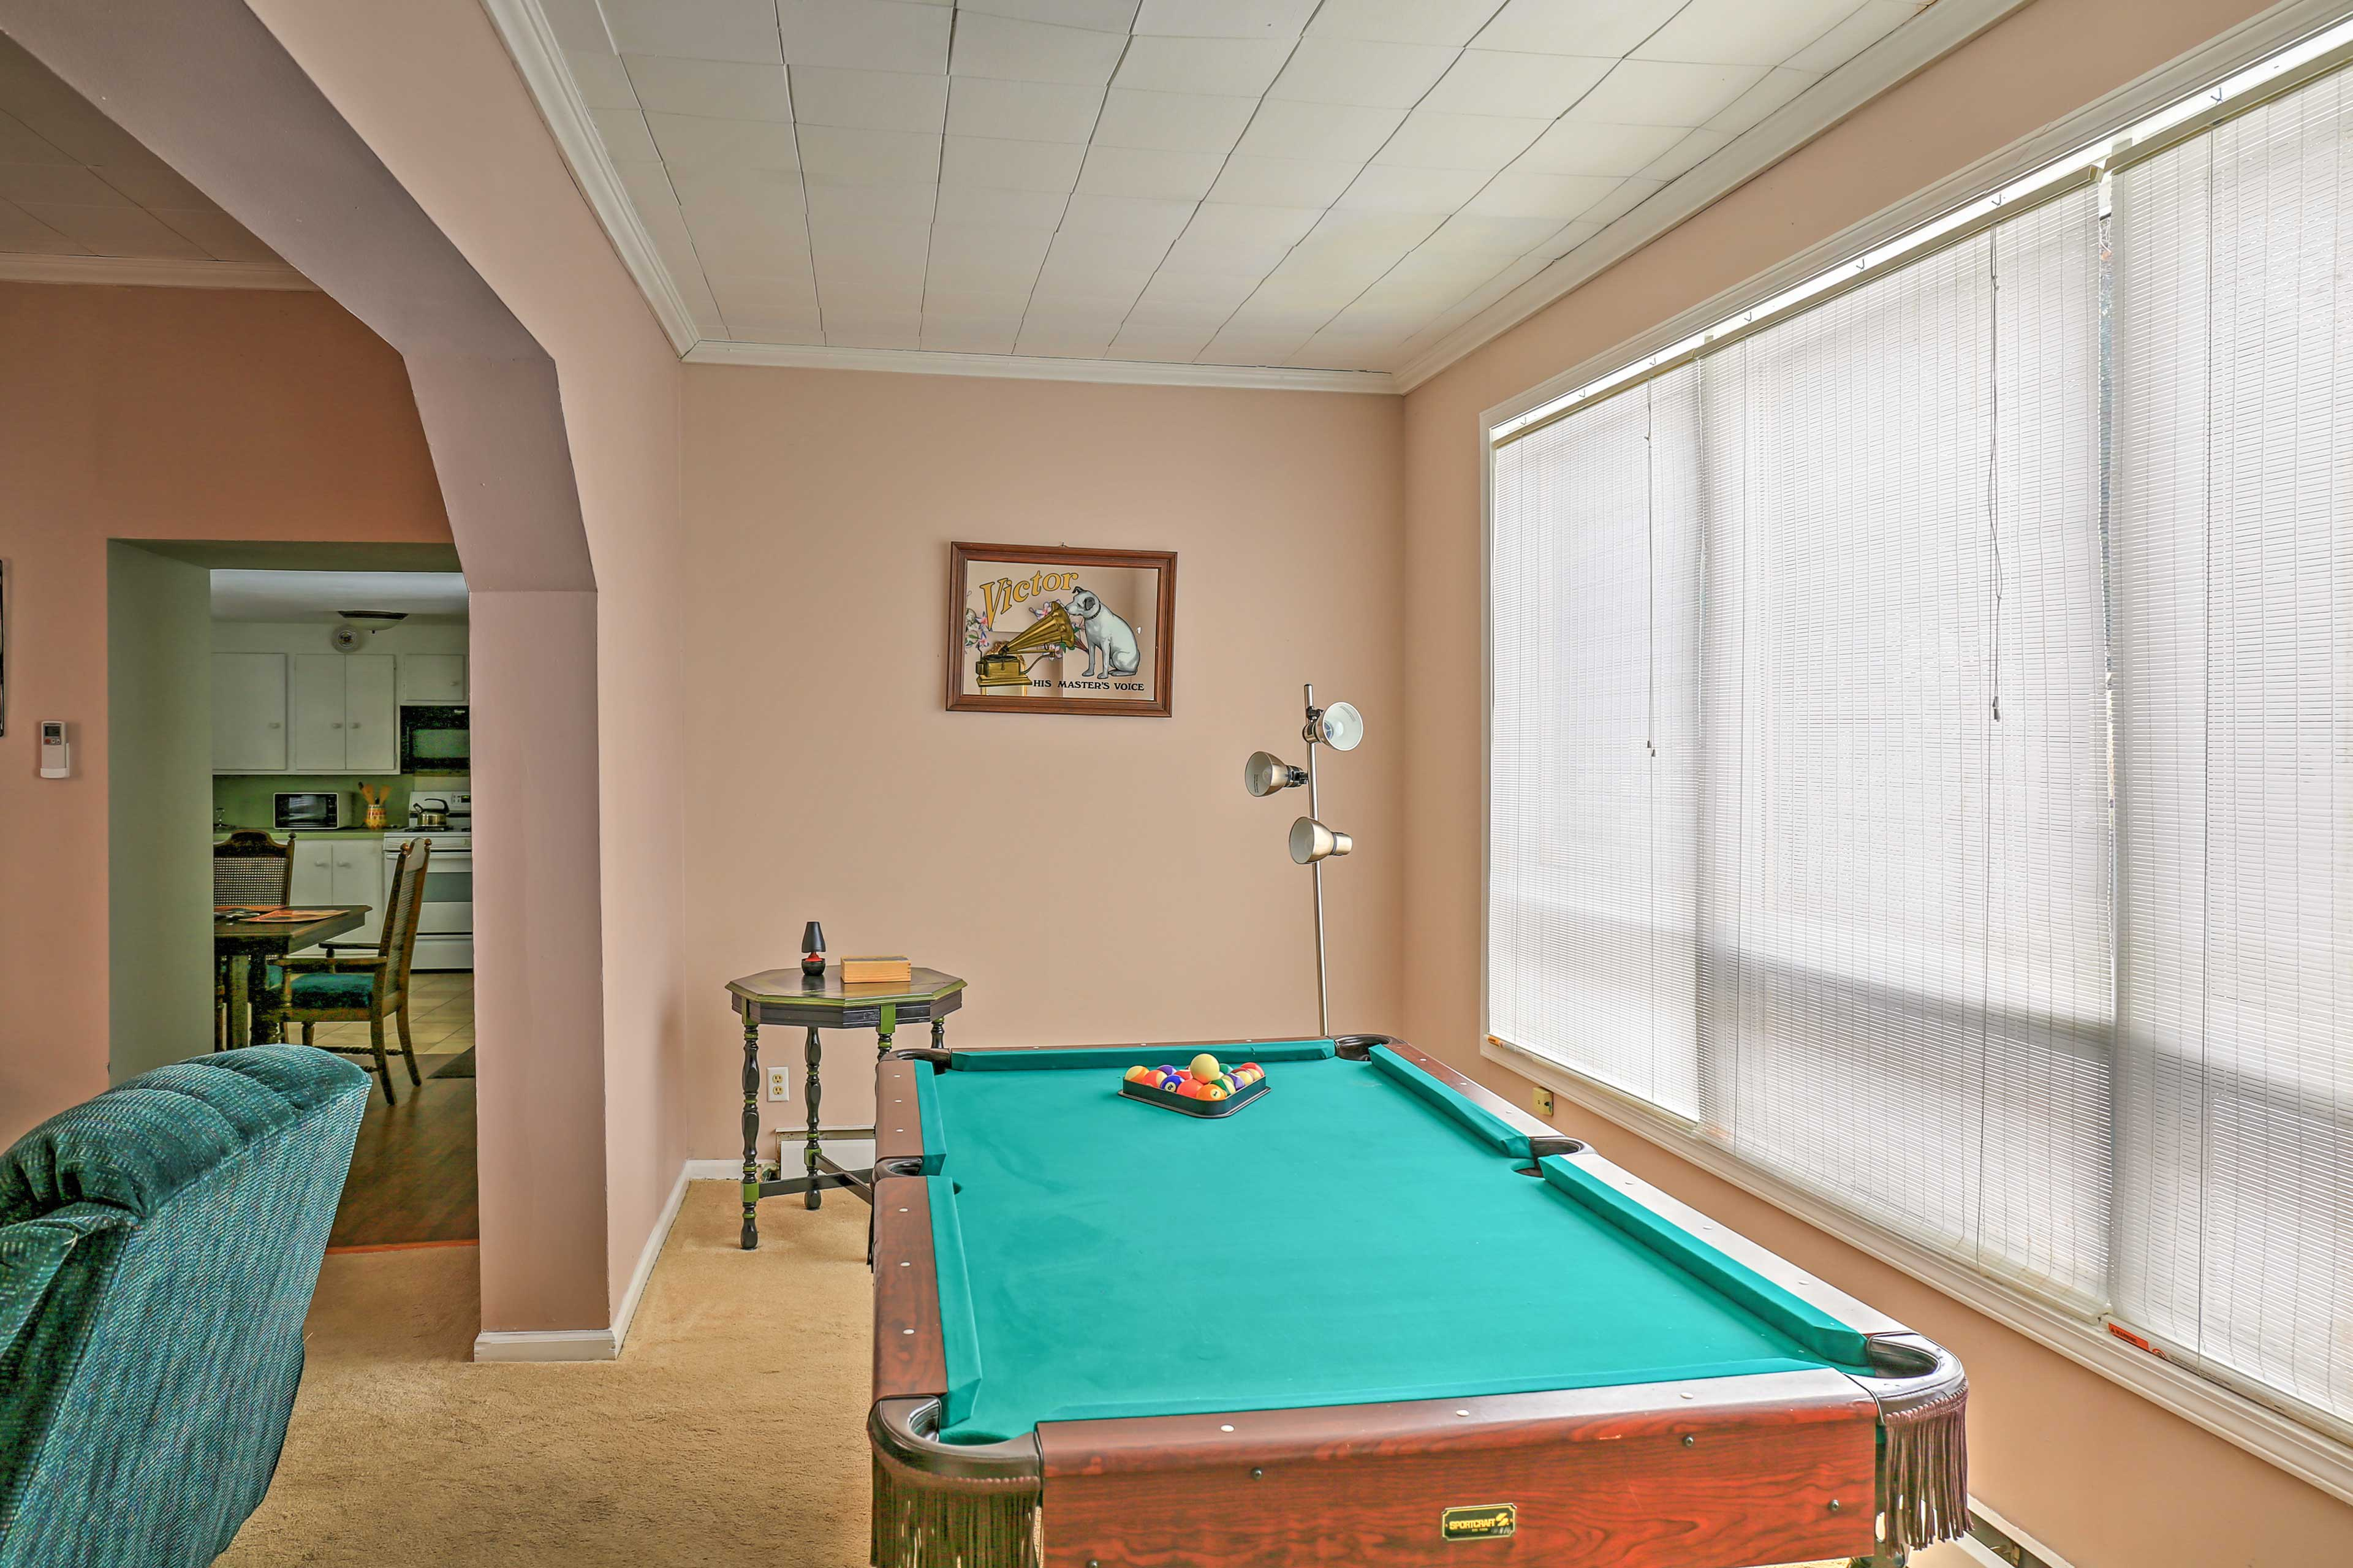 Challenge your travel companions to a game of pool.